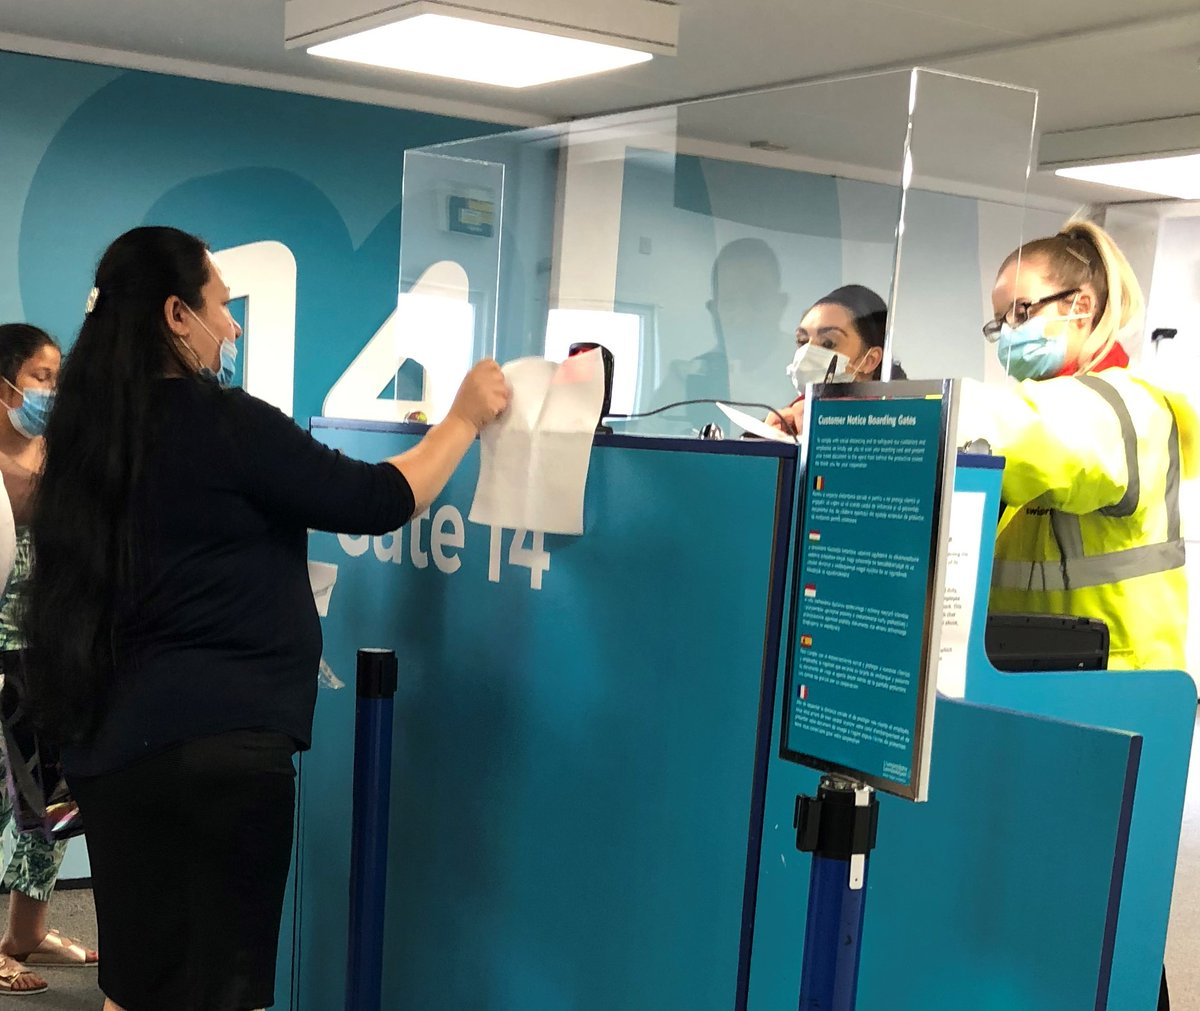 One of the new measures we've put in place to help reduce the spread of coronavirus is for passengers to scan their own boarding card at the Departure Gate. See https://t.co/PoLvwVat7R for more information regarding the new measures in place. #StayAlert https://t.co/IPJ1oQ8guV https://t.co/E133MVWzle